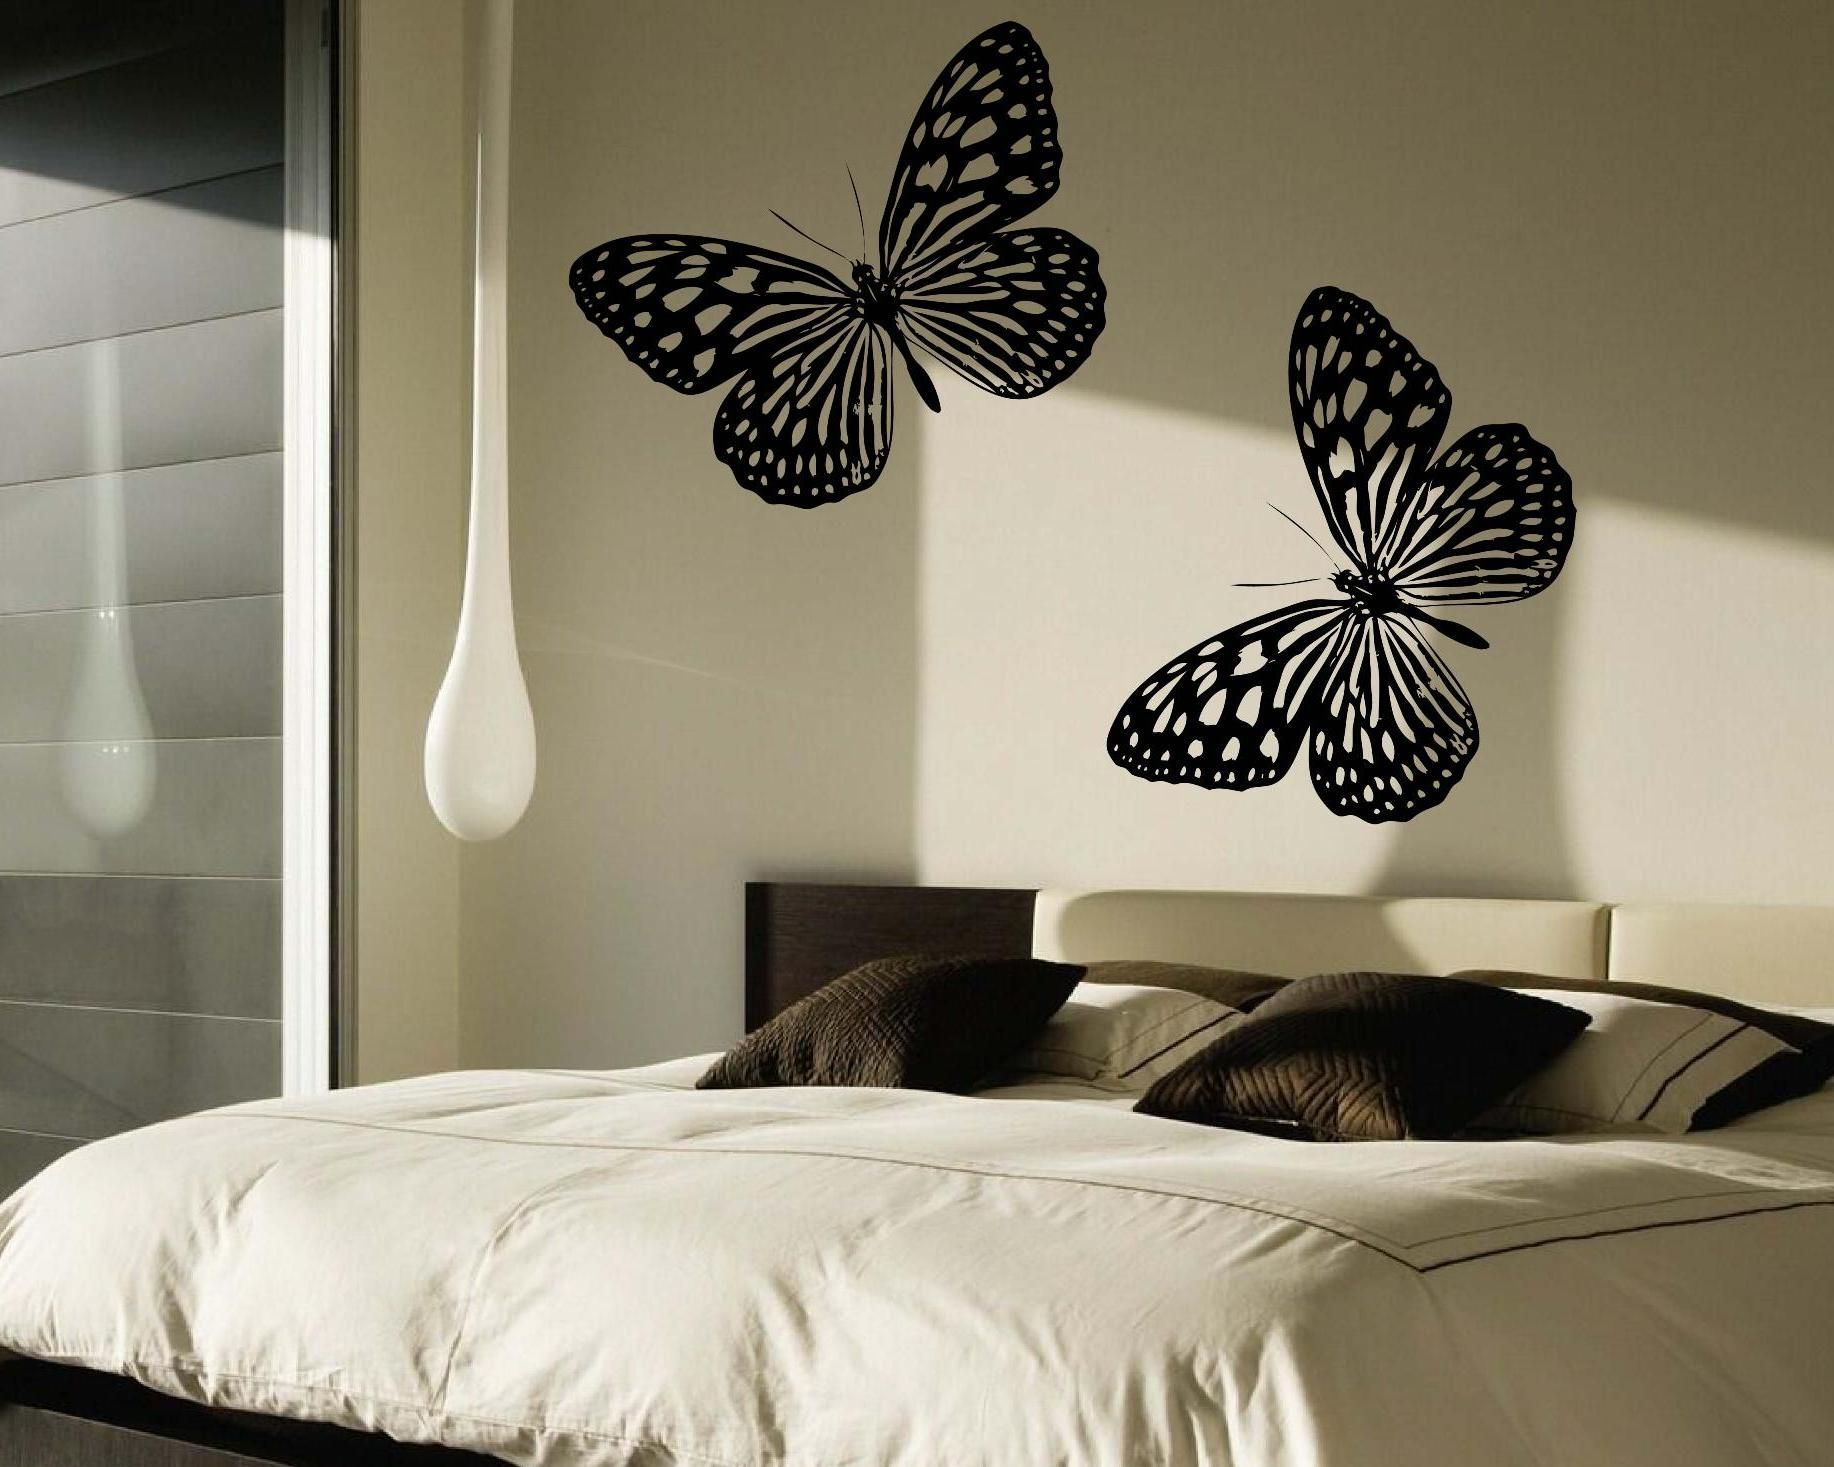 Black large butterflies wall decal on a white wall wall decal black large butterflies wall decal on a white wall amipublicfo Choice Image